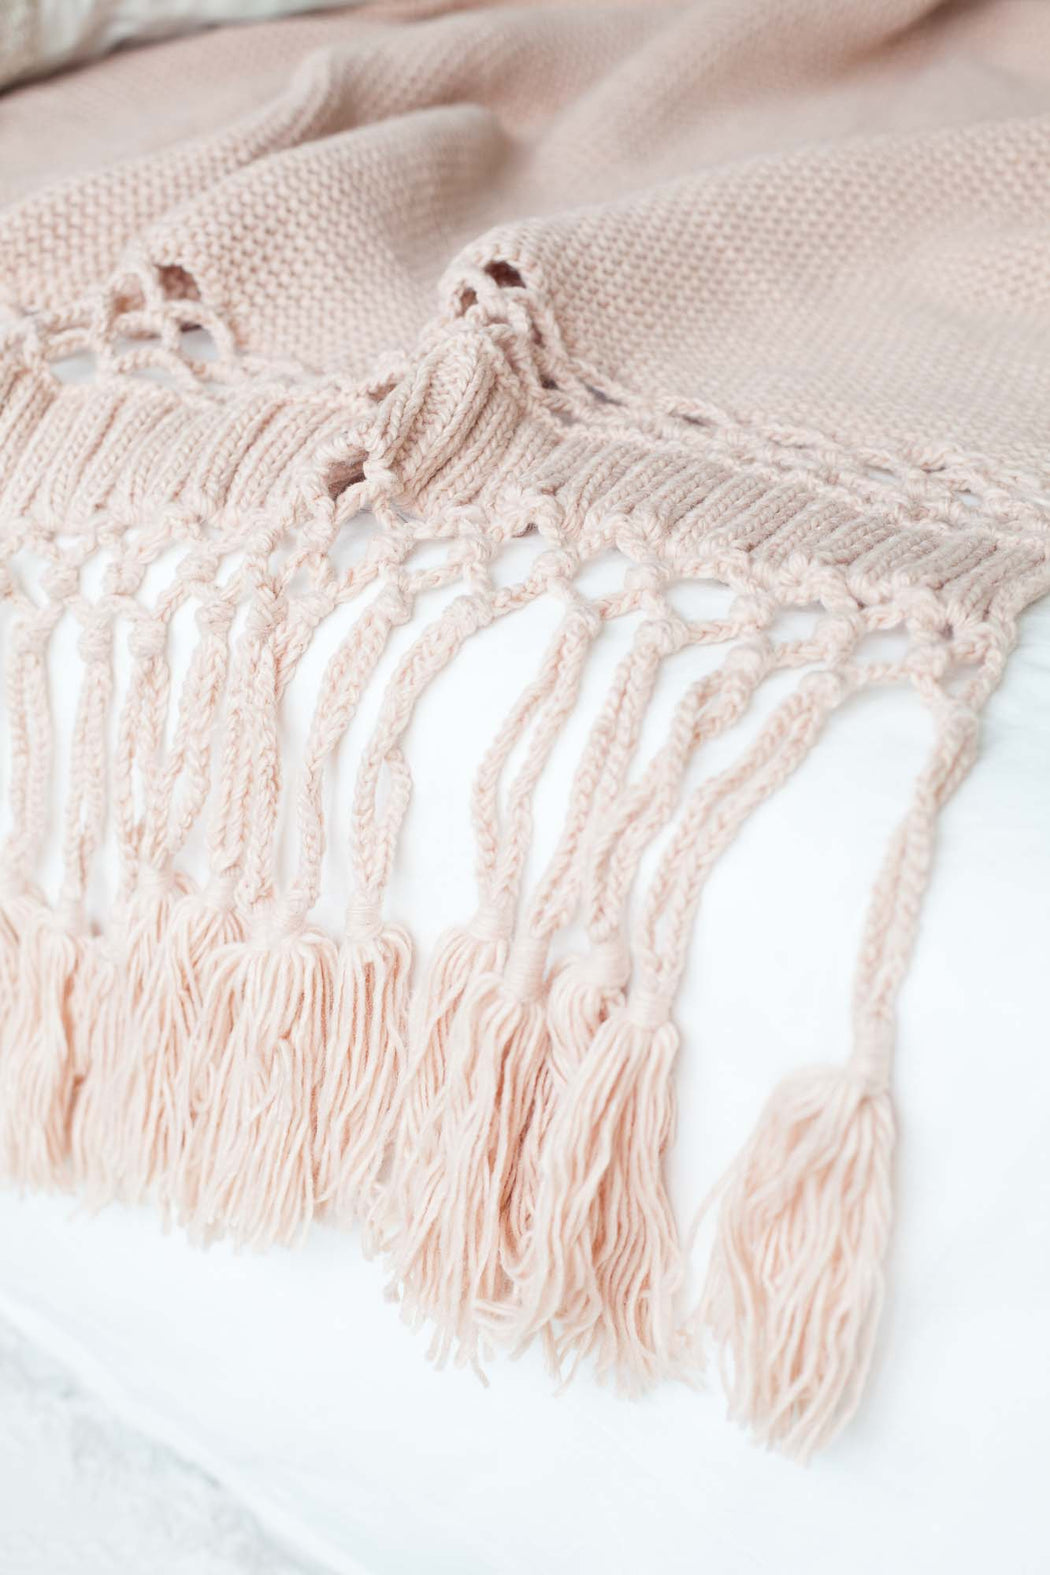 COMING BACK: Nude Pink Tassel Knitted Throw, Textile, 3LittlePicks - 3LittlePicks